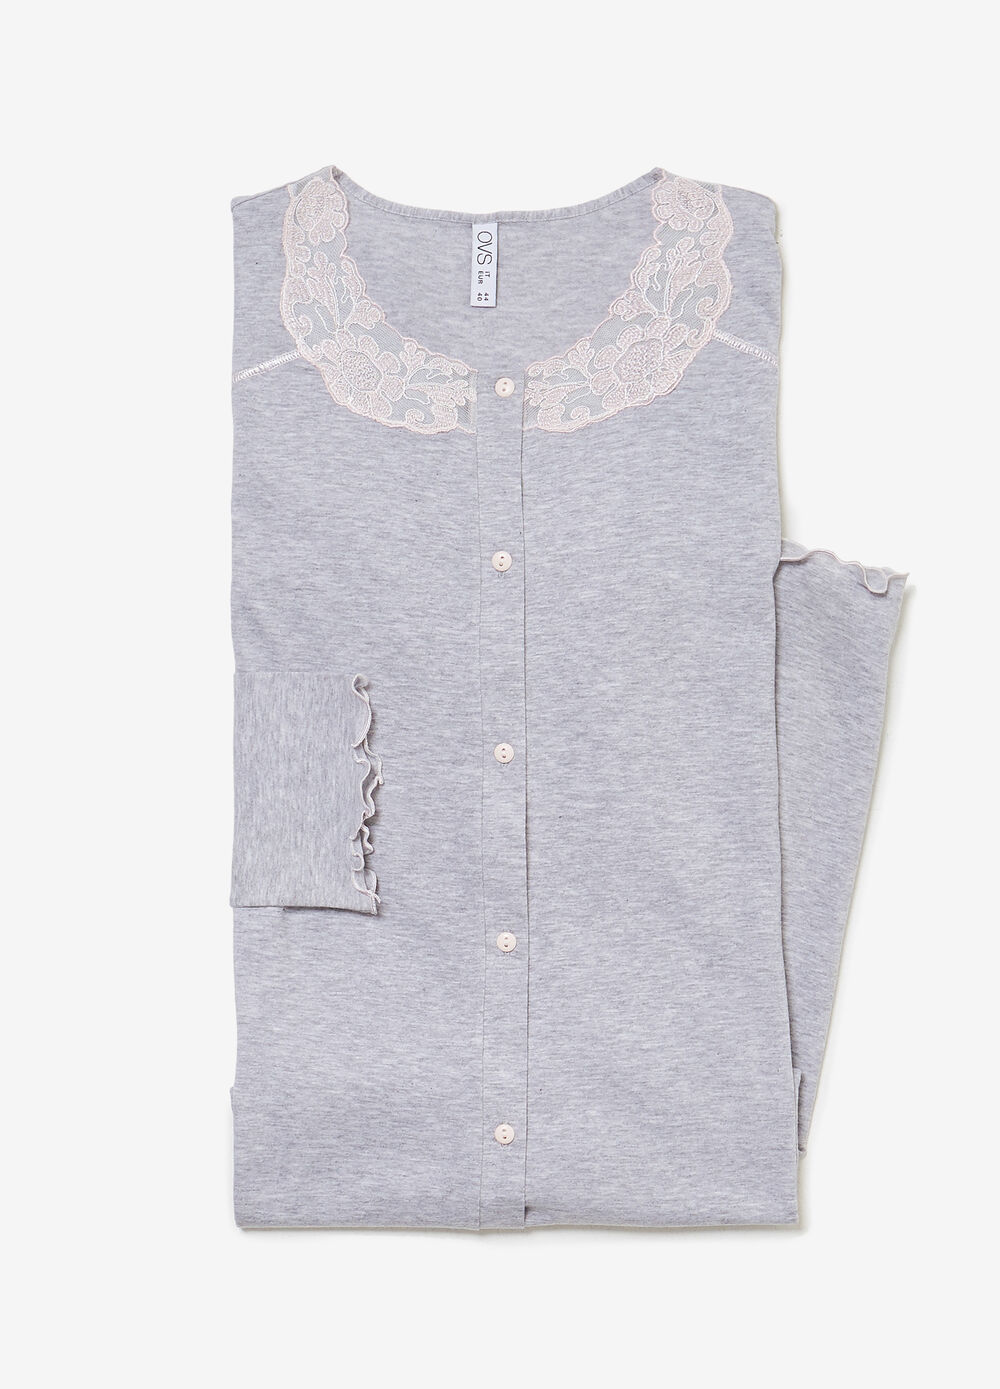 100% cotton nightshirt with lace